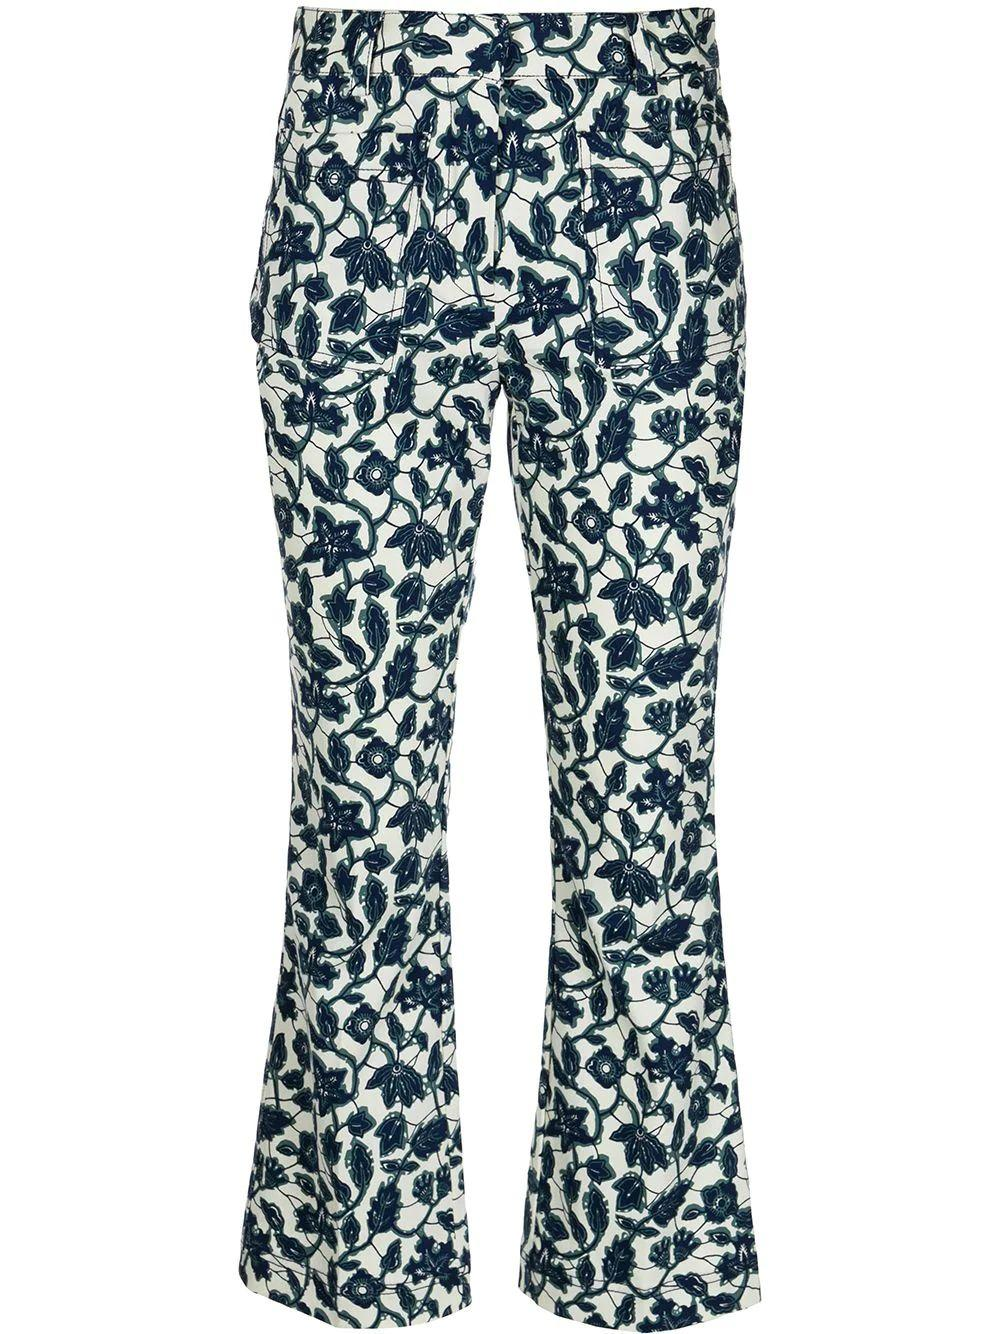 Laurie Cropped Flare Pant